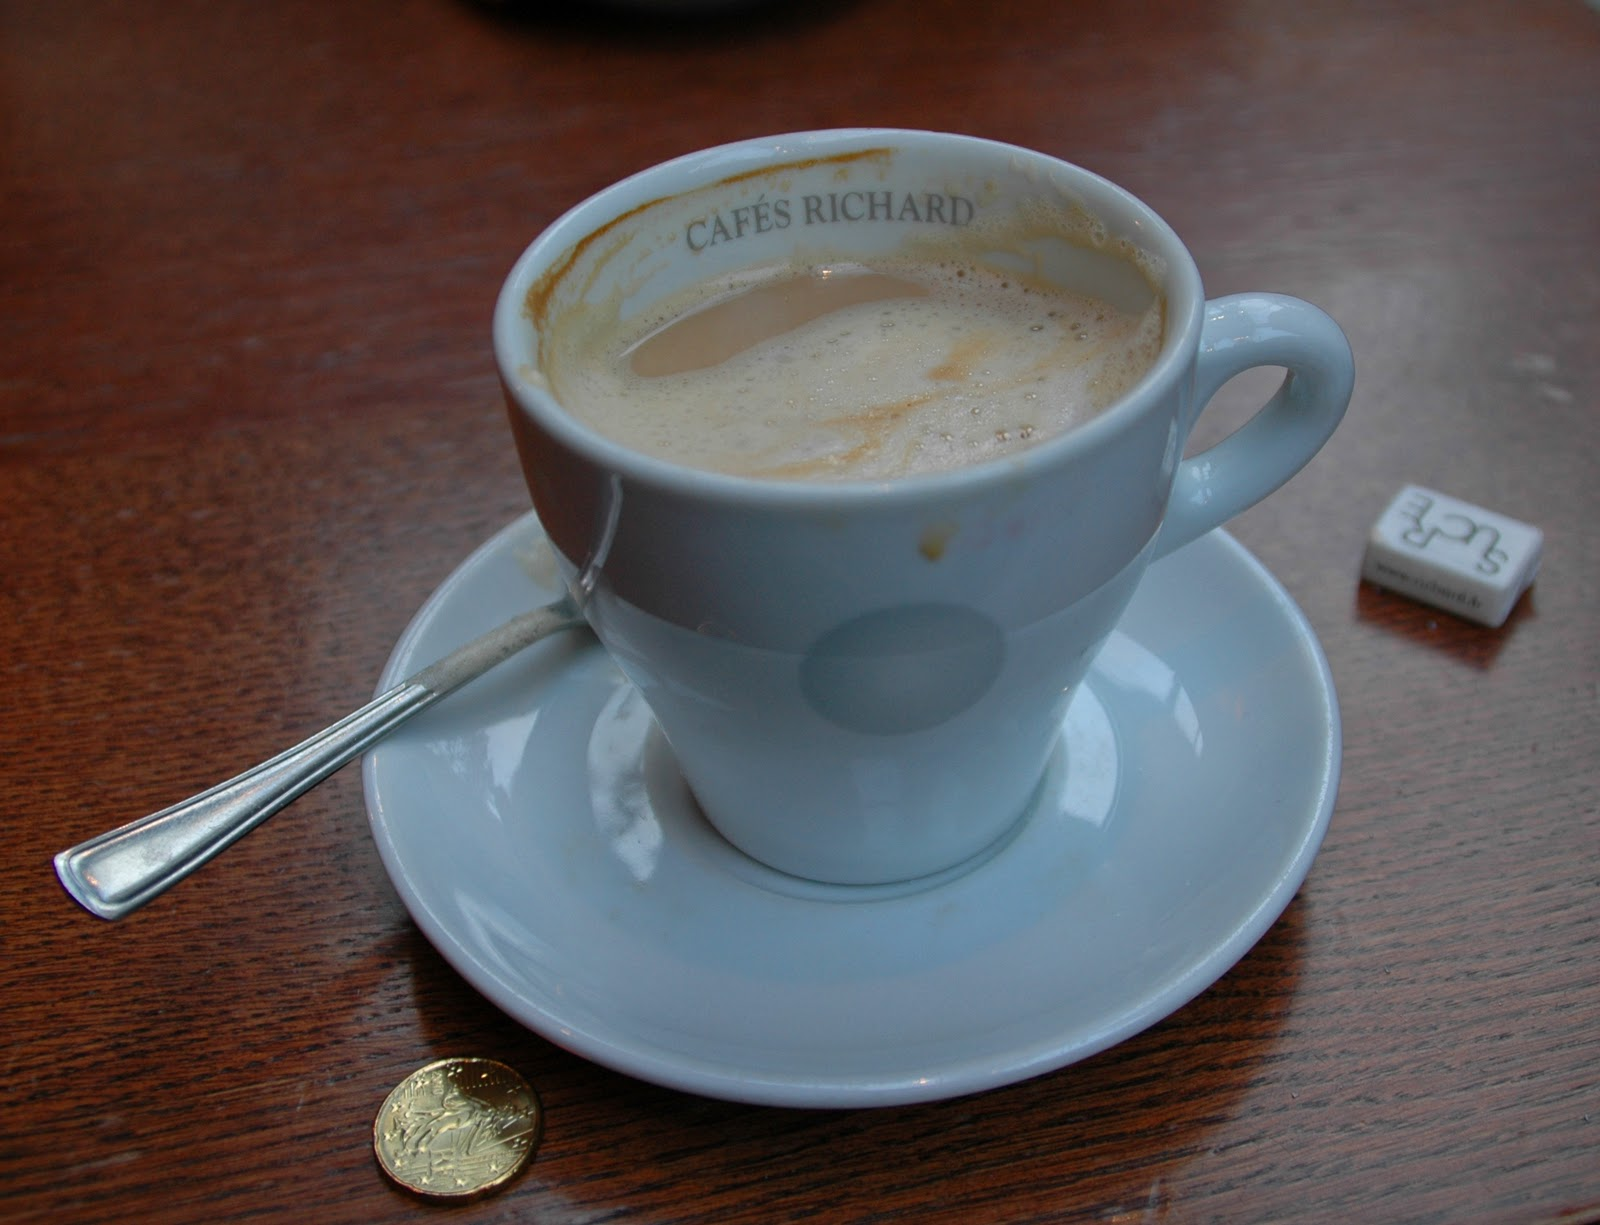 At Any Café In Paris Your Coffee Will Likely Be Served A Cafés Richard Cup